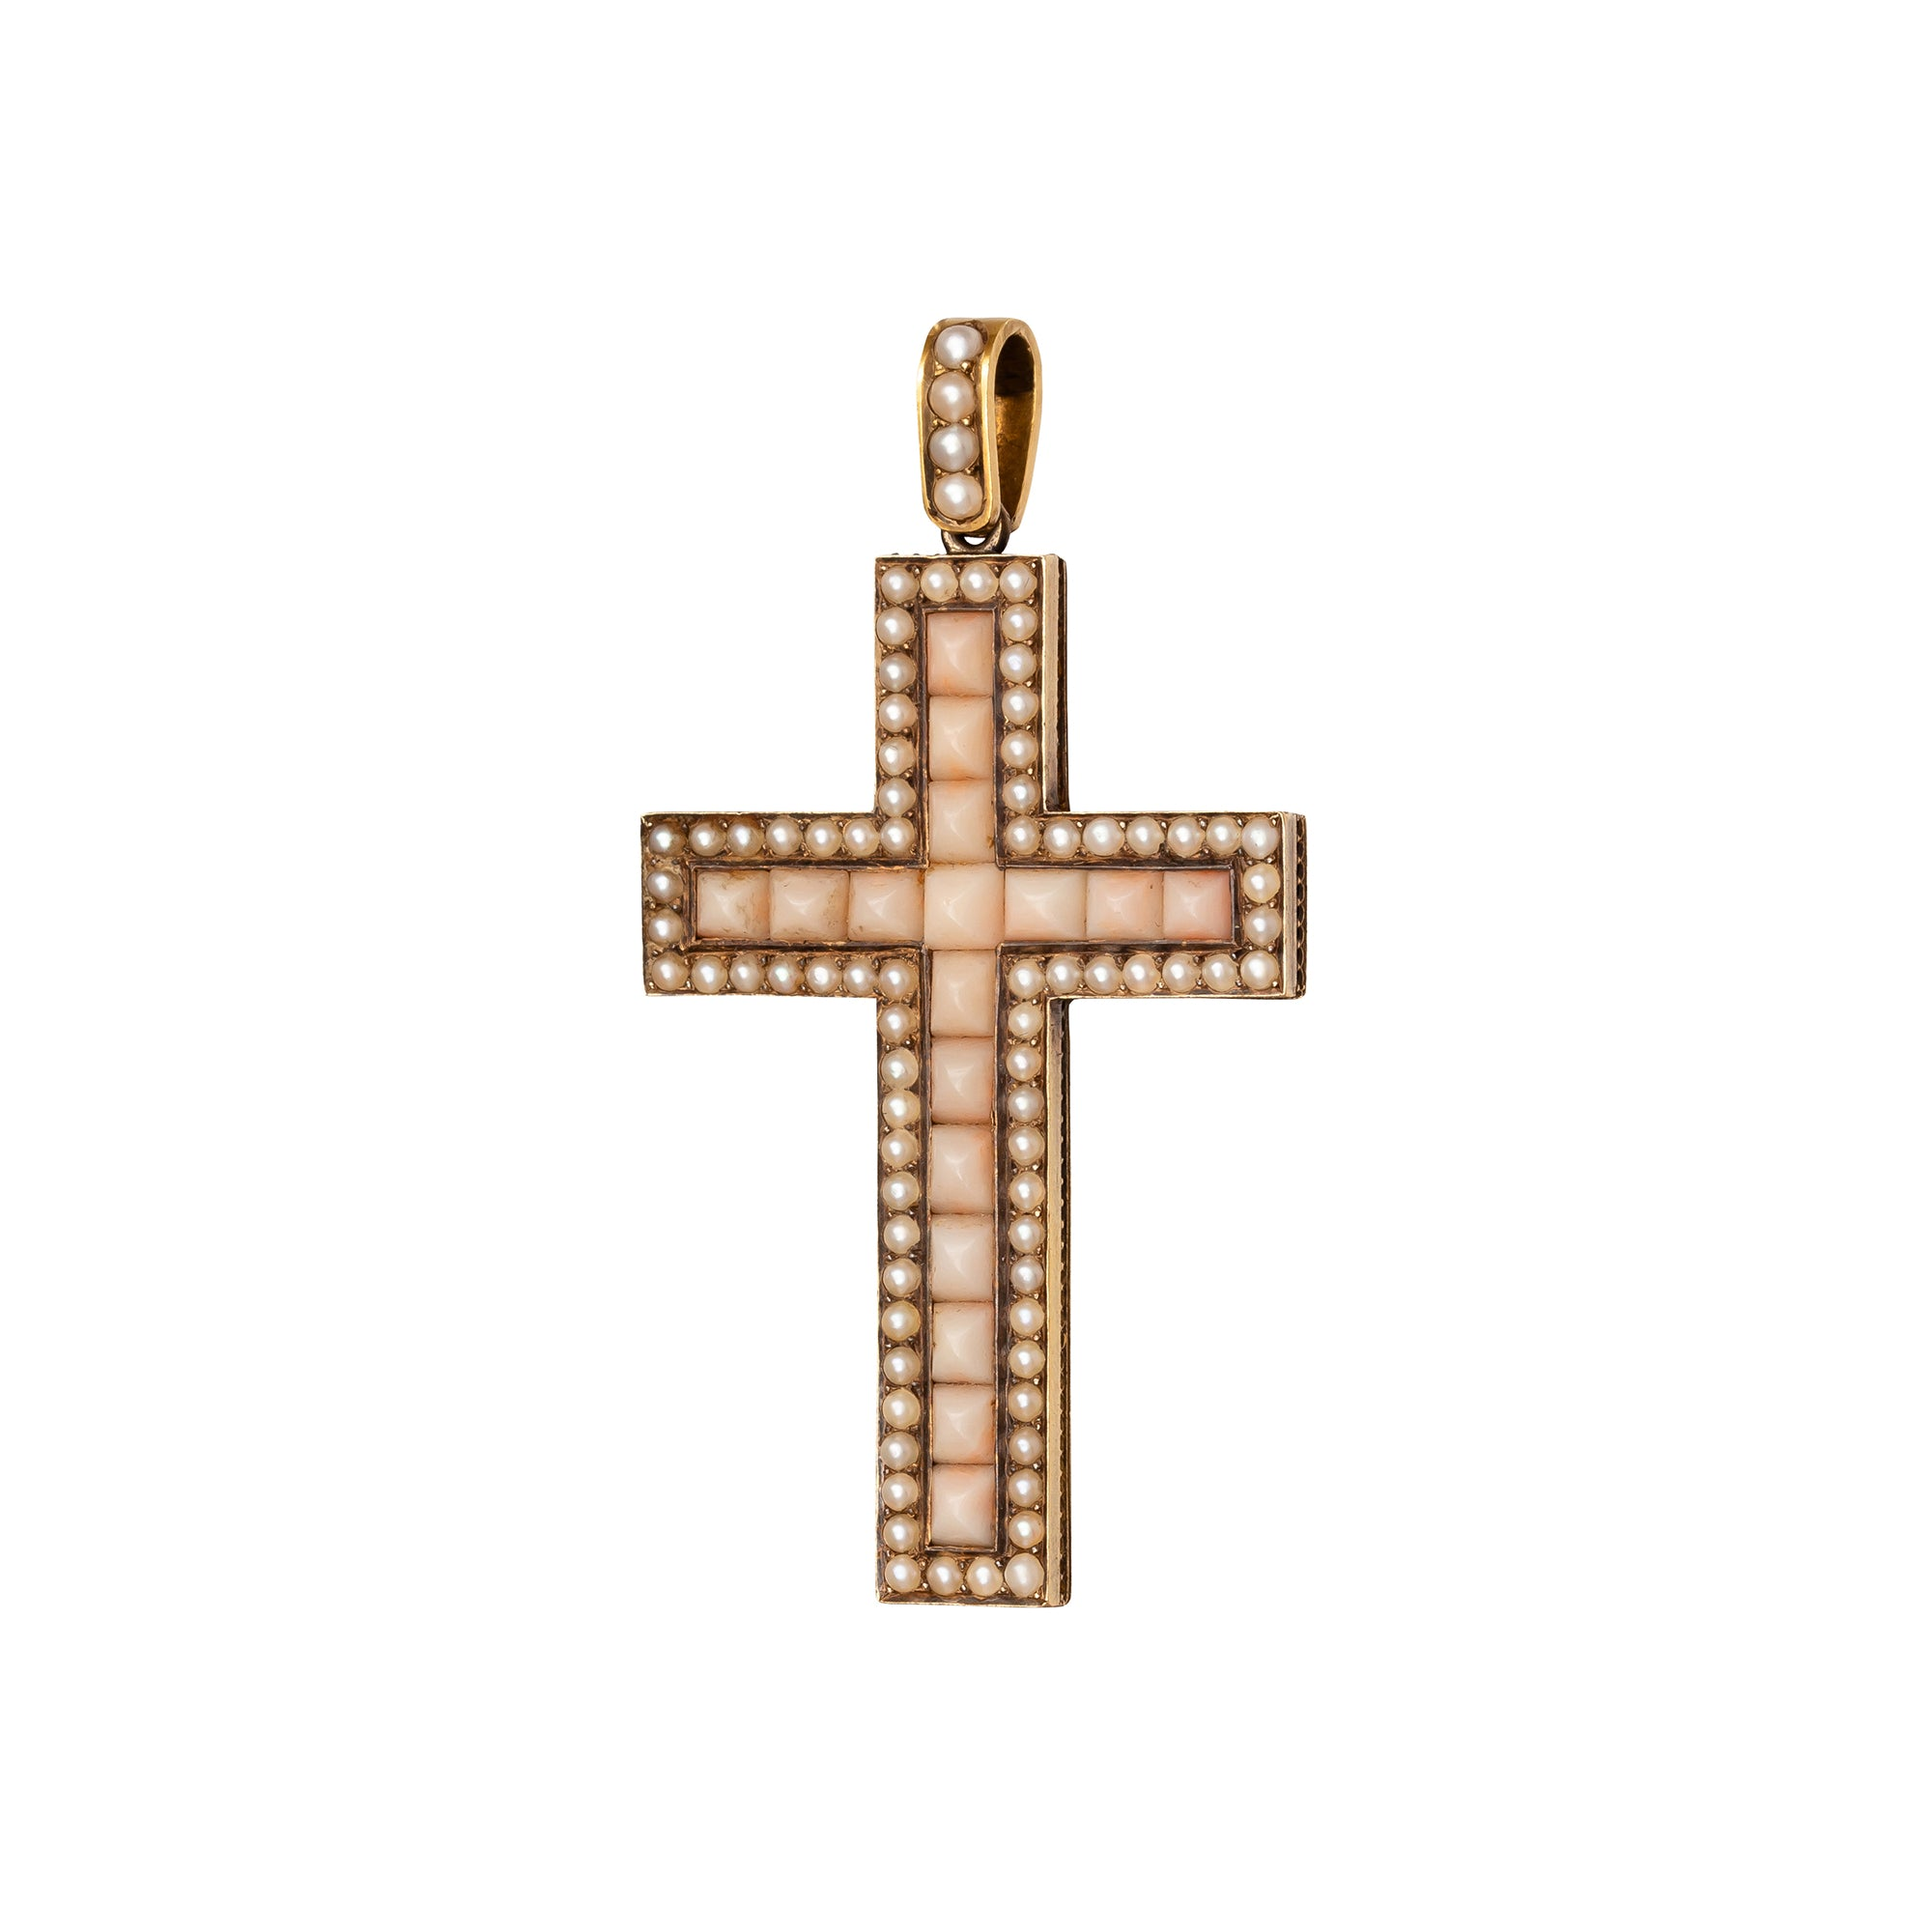 Victorian Coral & Pearl Cross - Antique & Vintage Jewelry - Charms & Pendants | Broken English Jewelry